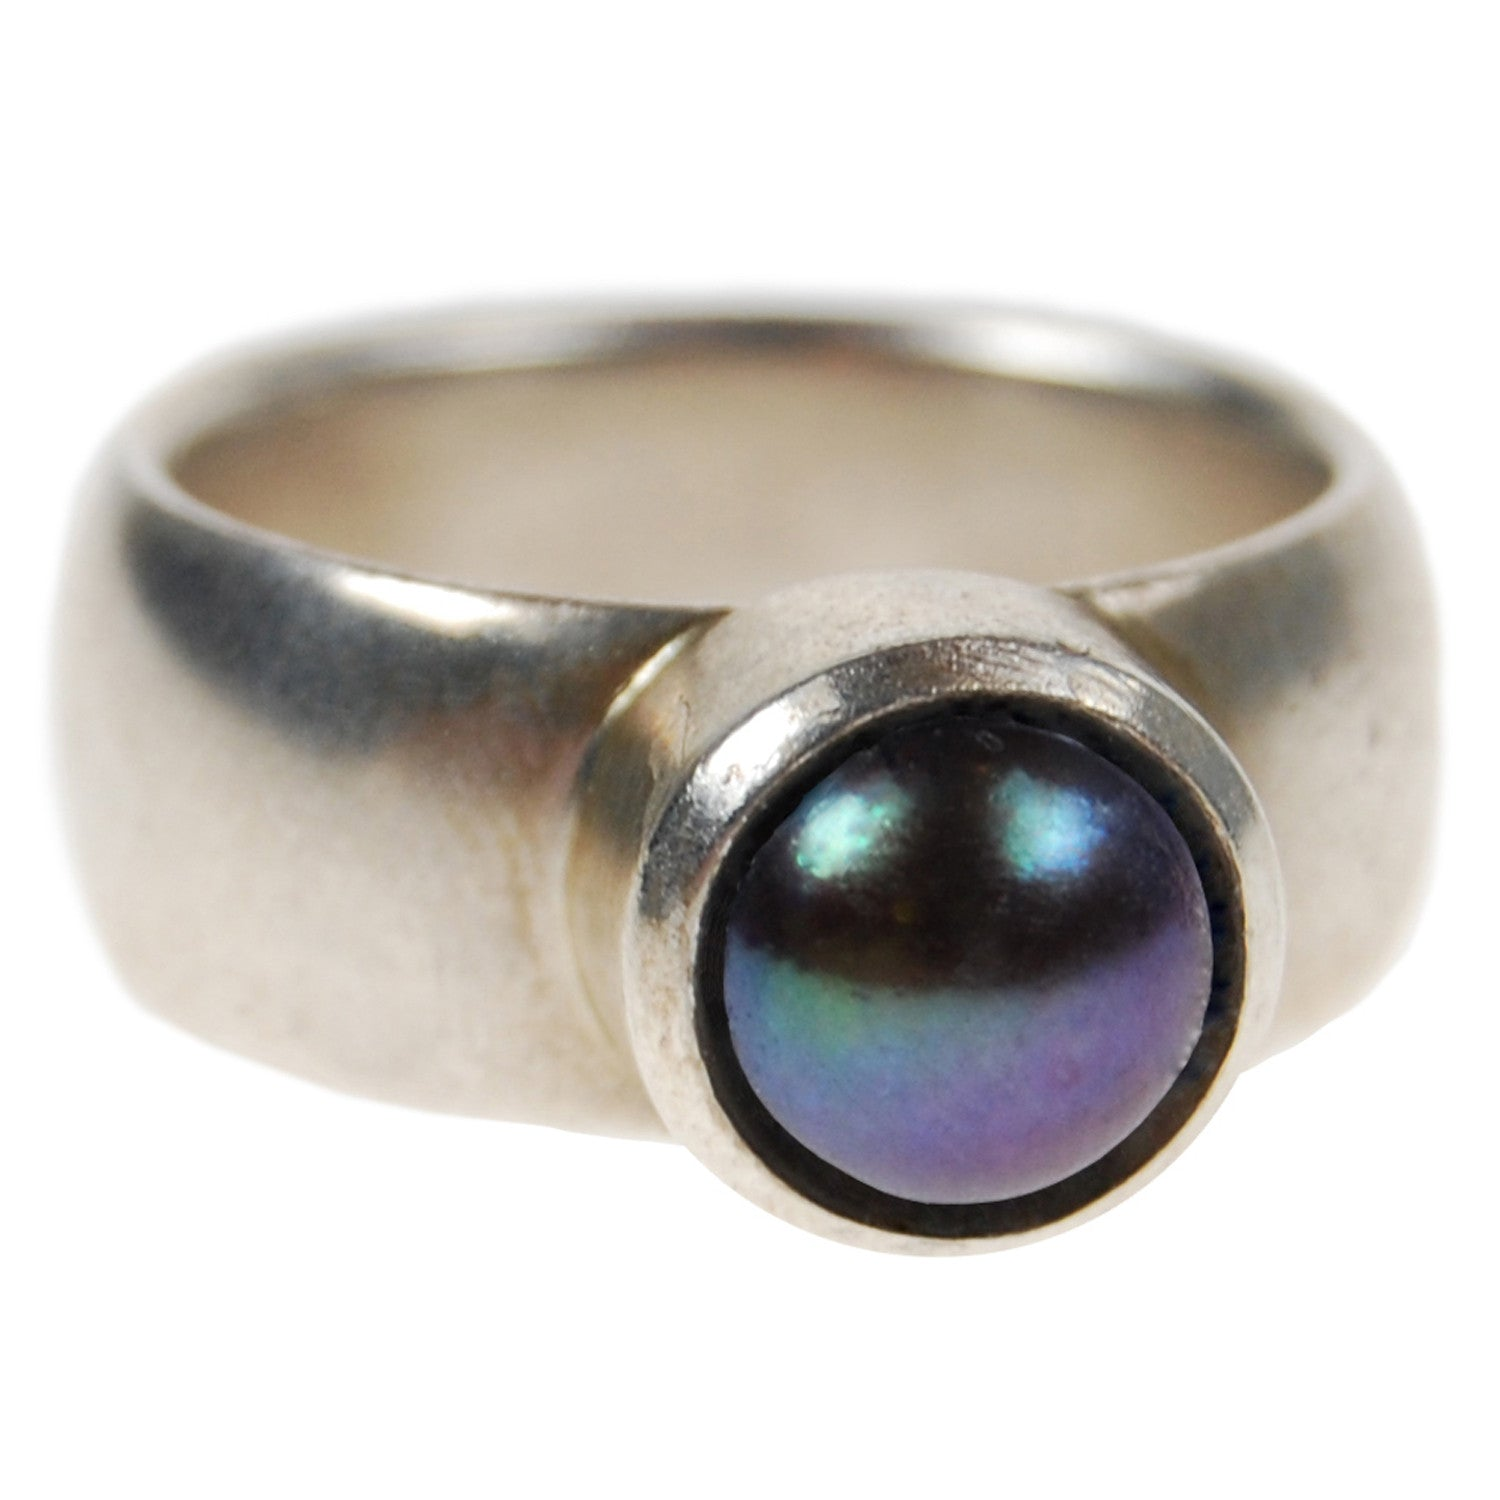 Freshwater Pearl Ring in Peacock Black